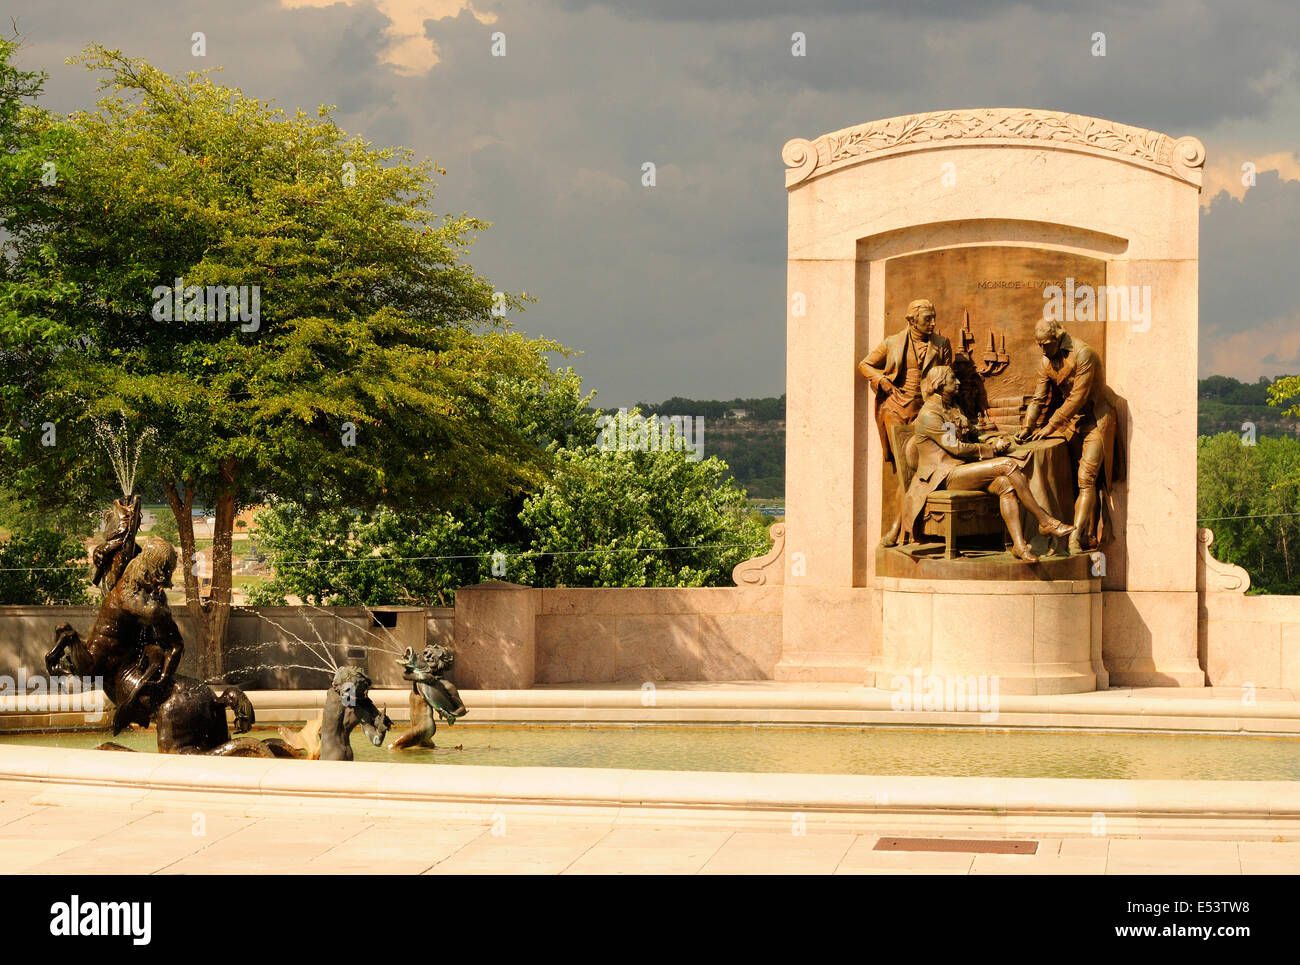 At the Missouri State Capitol in Jefferson City a bronze relief and statuary depicts the Louisiana Purchase - Stock Image